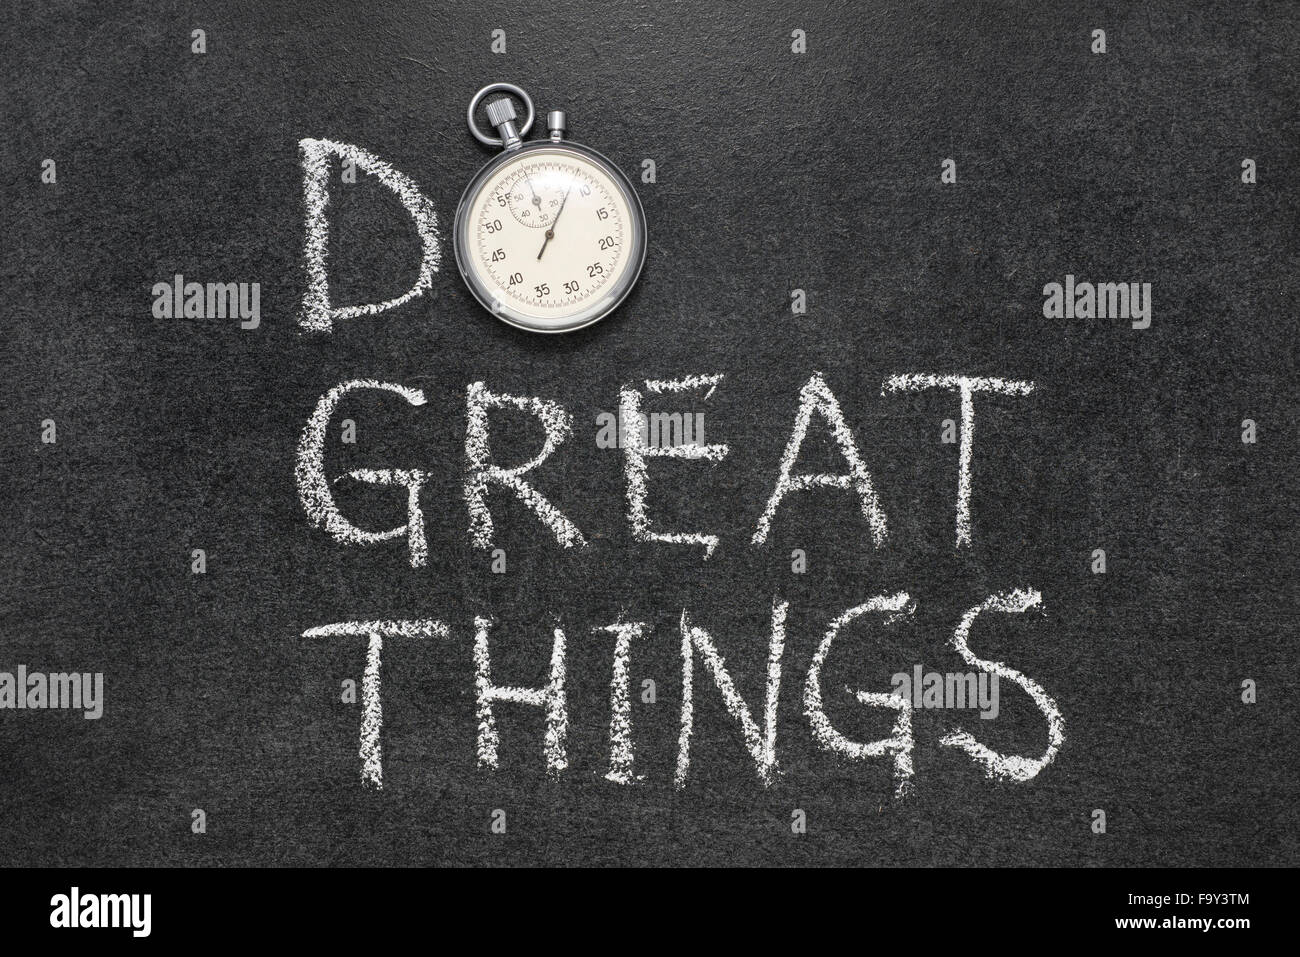 do great things phrase handwritten on chalkboard with vintage precise stopwatch used instead of O - Stock Image